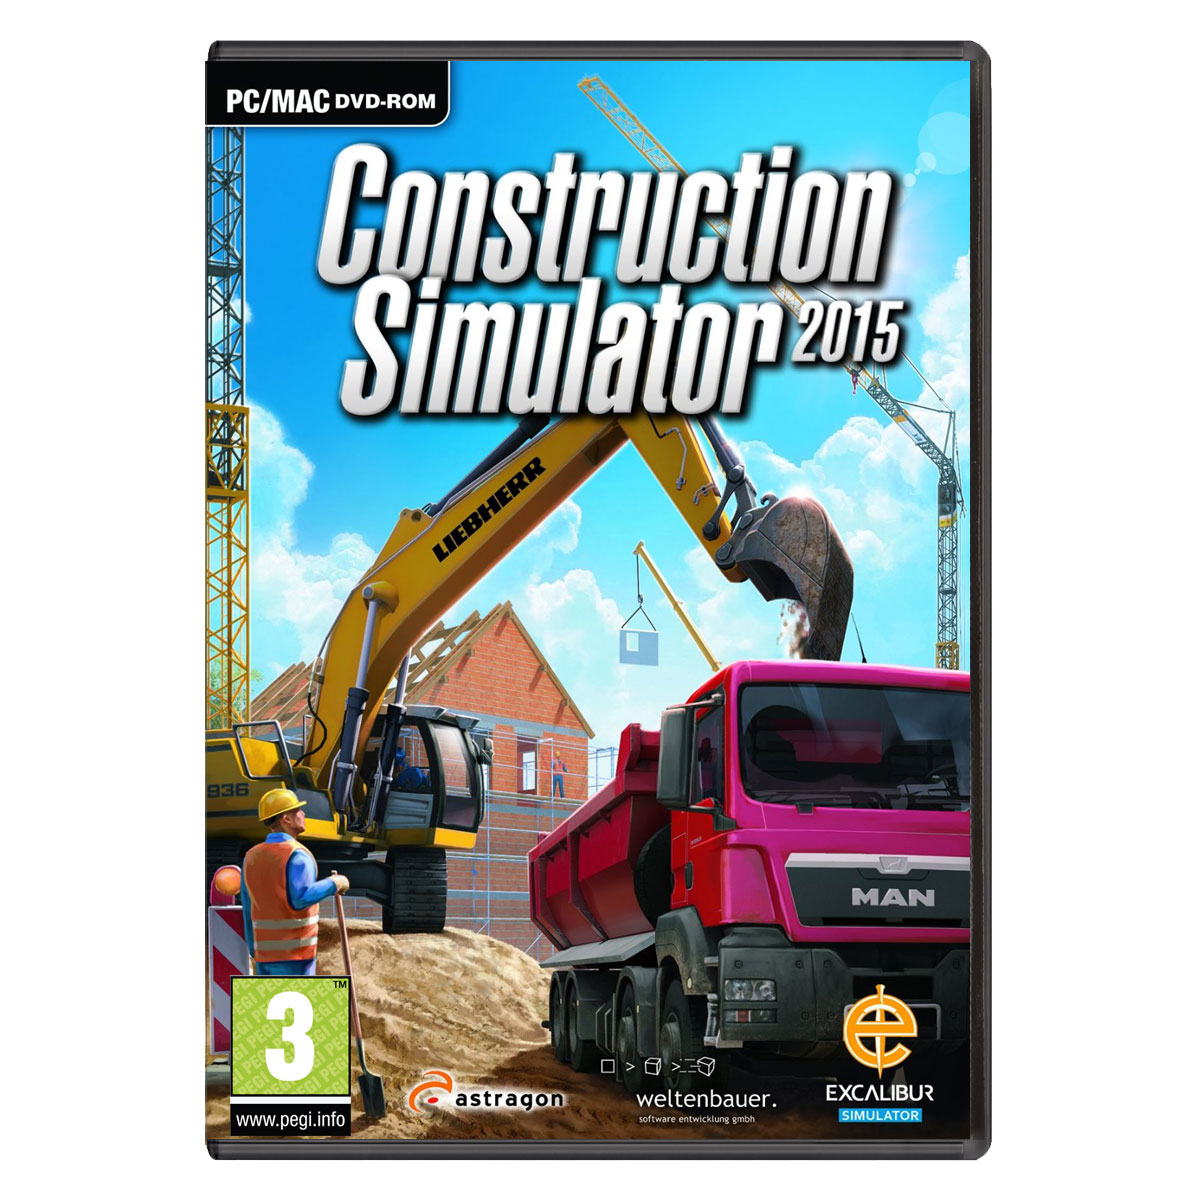 construction simulator 2015 pc jeux pc astragon software sur ldlc. Black Bedroom Furniture Sets. Home Design Ideas